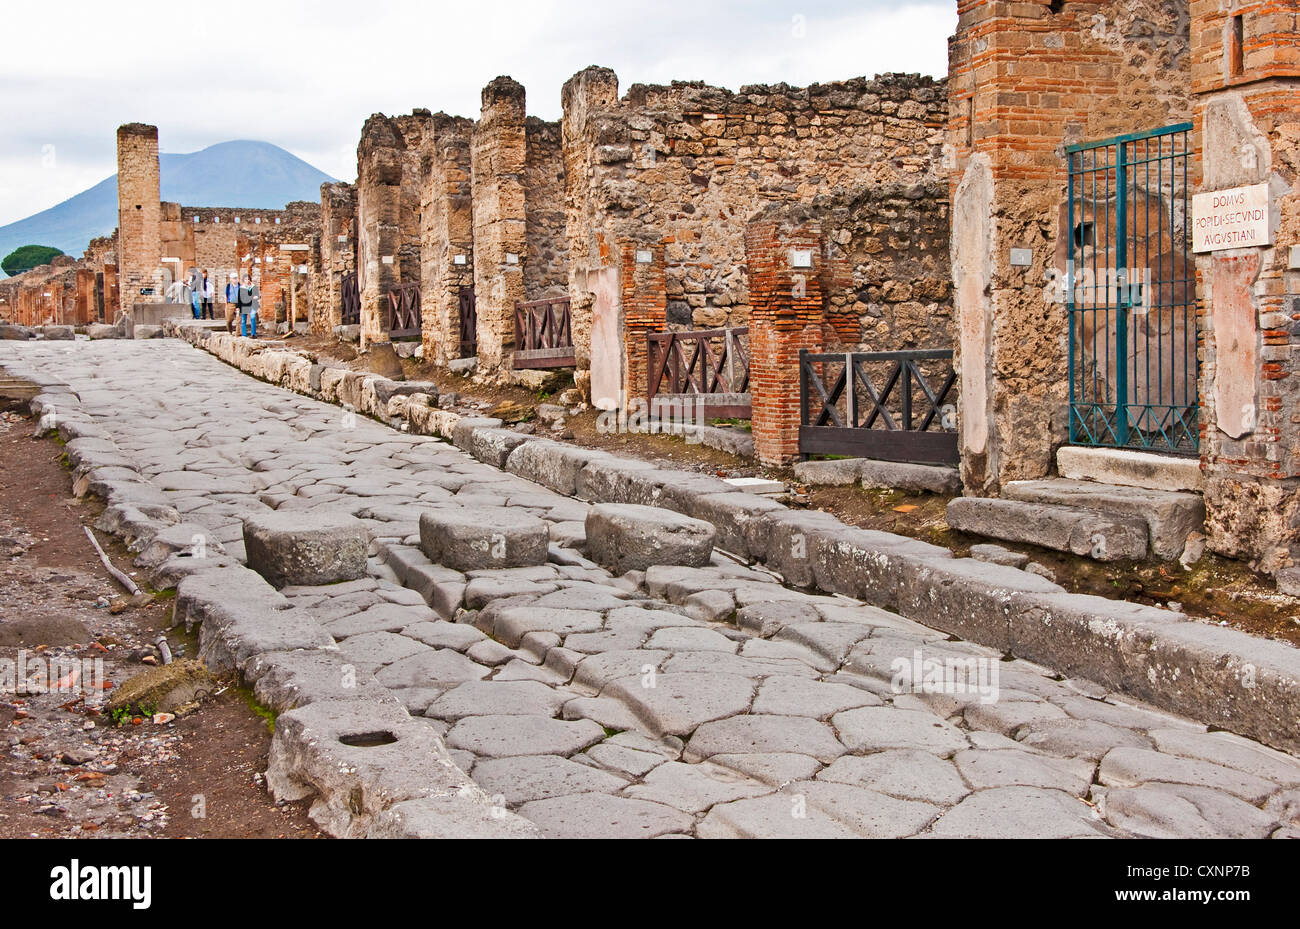 a history of the ancient roman city of pompeii Facts about ancient pompeii elaborate the details about the major resort city during the ancient rome since the city was located on the foot of mount vesuvius, people were buried under 20.